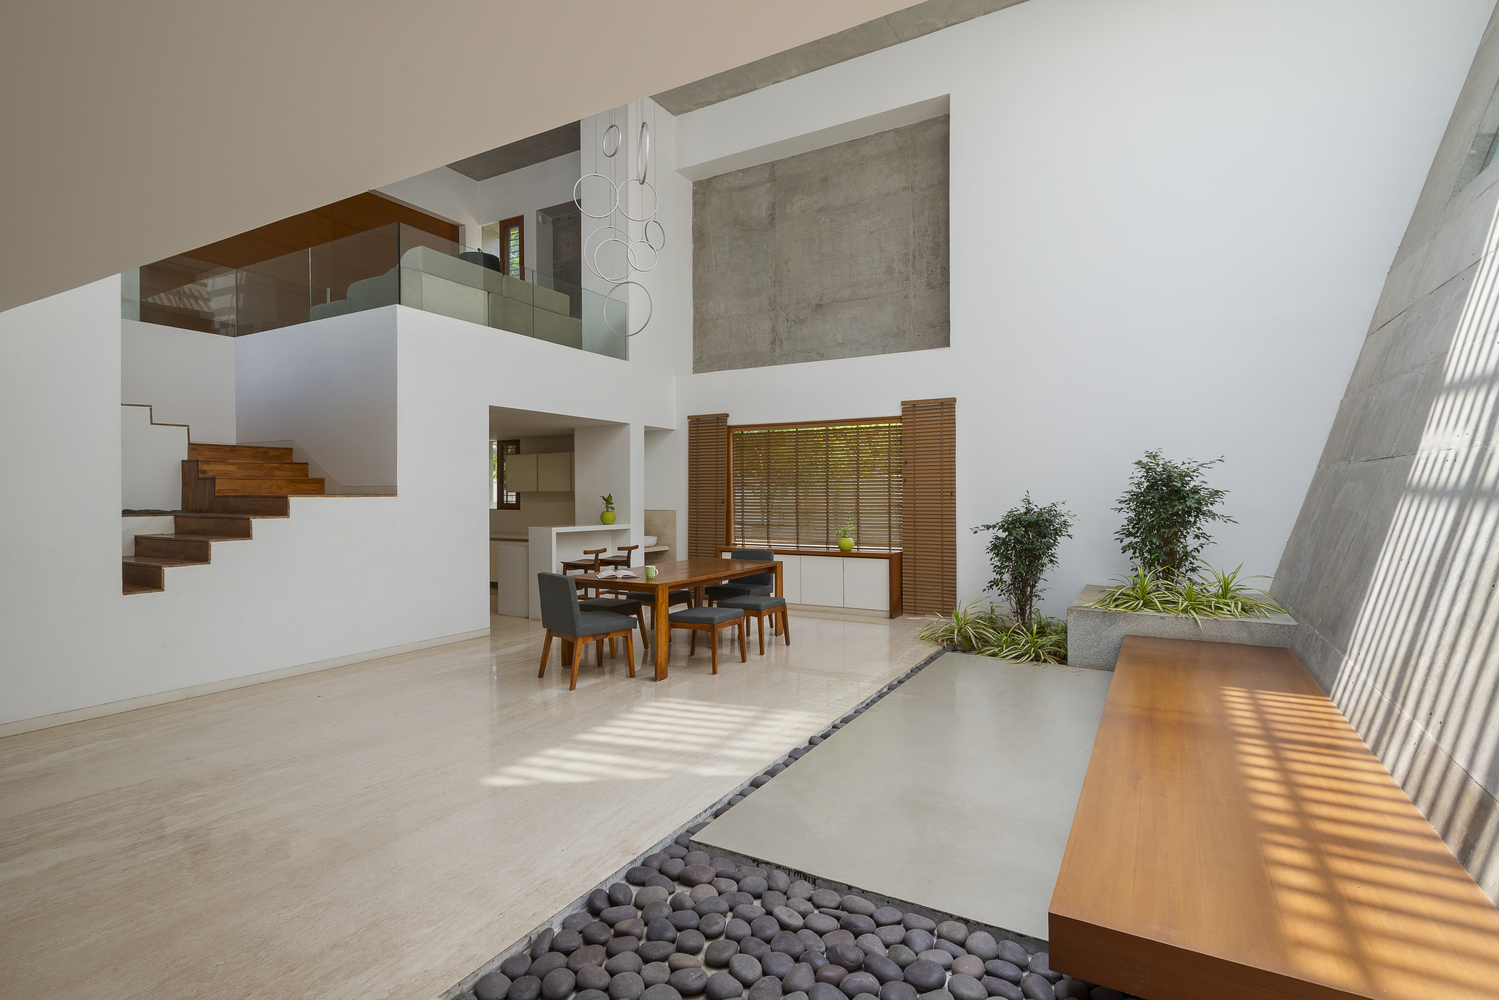 The double-height areas look and feel very bright, airy and spacious